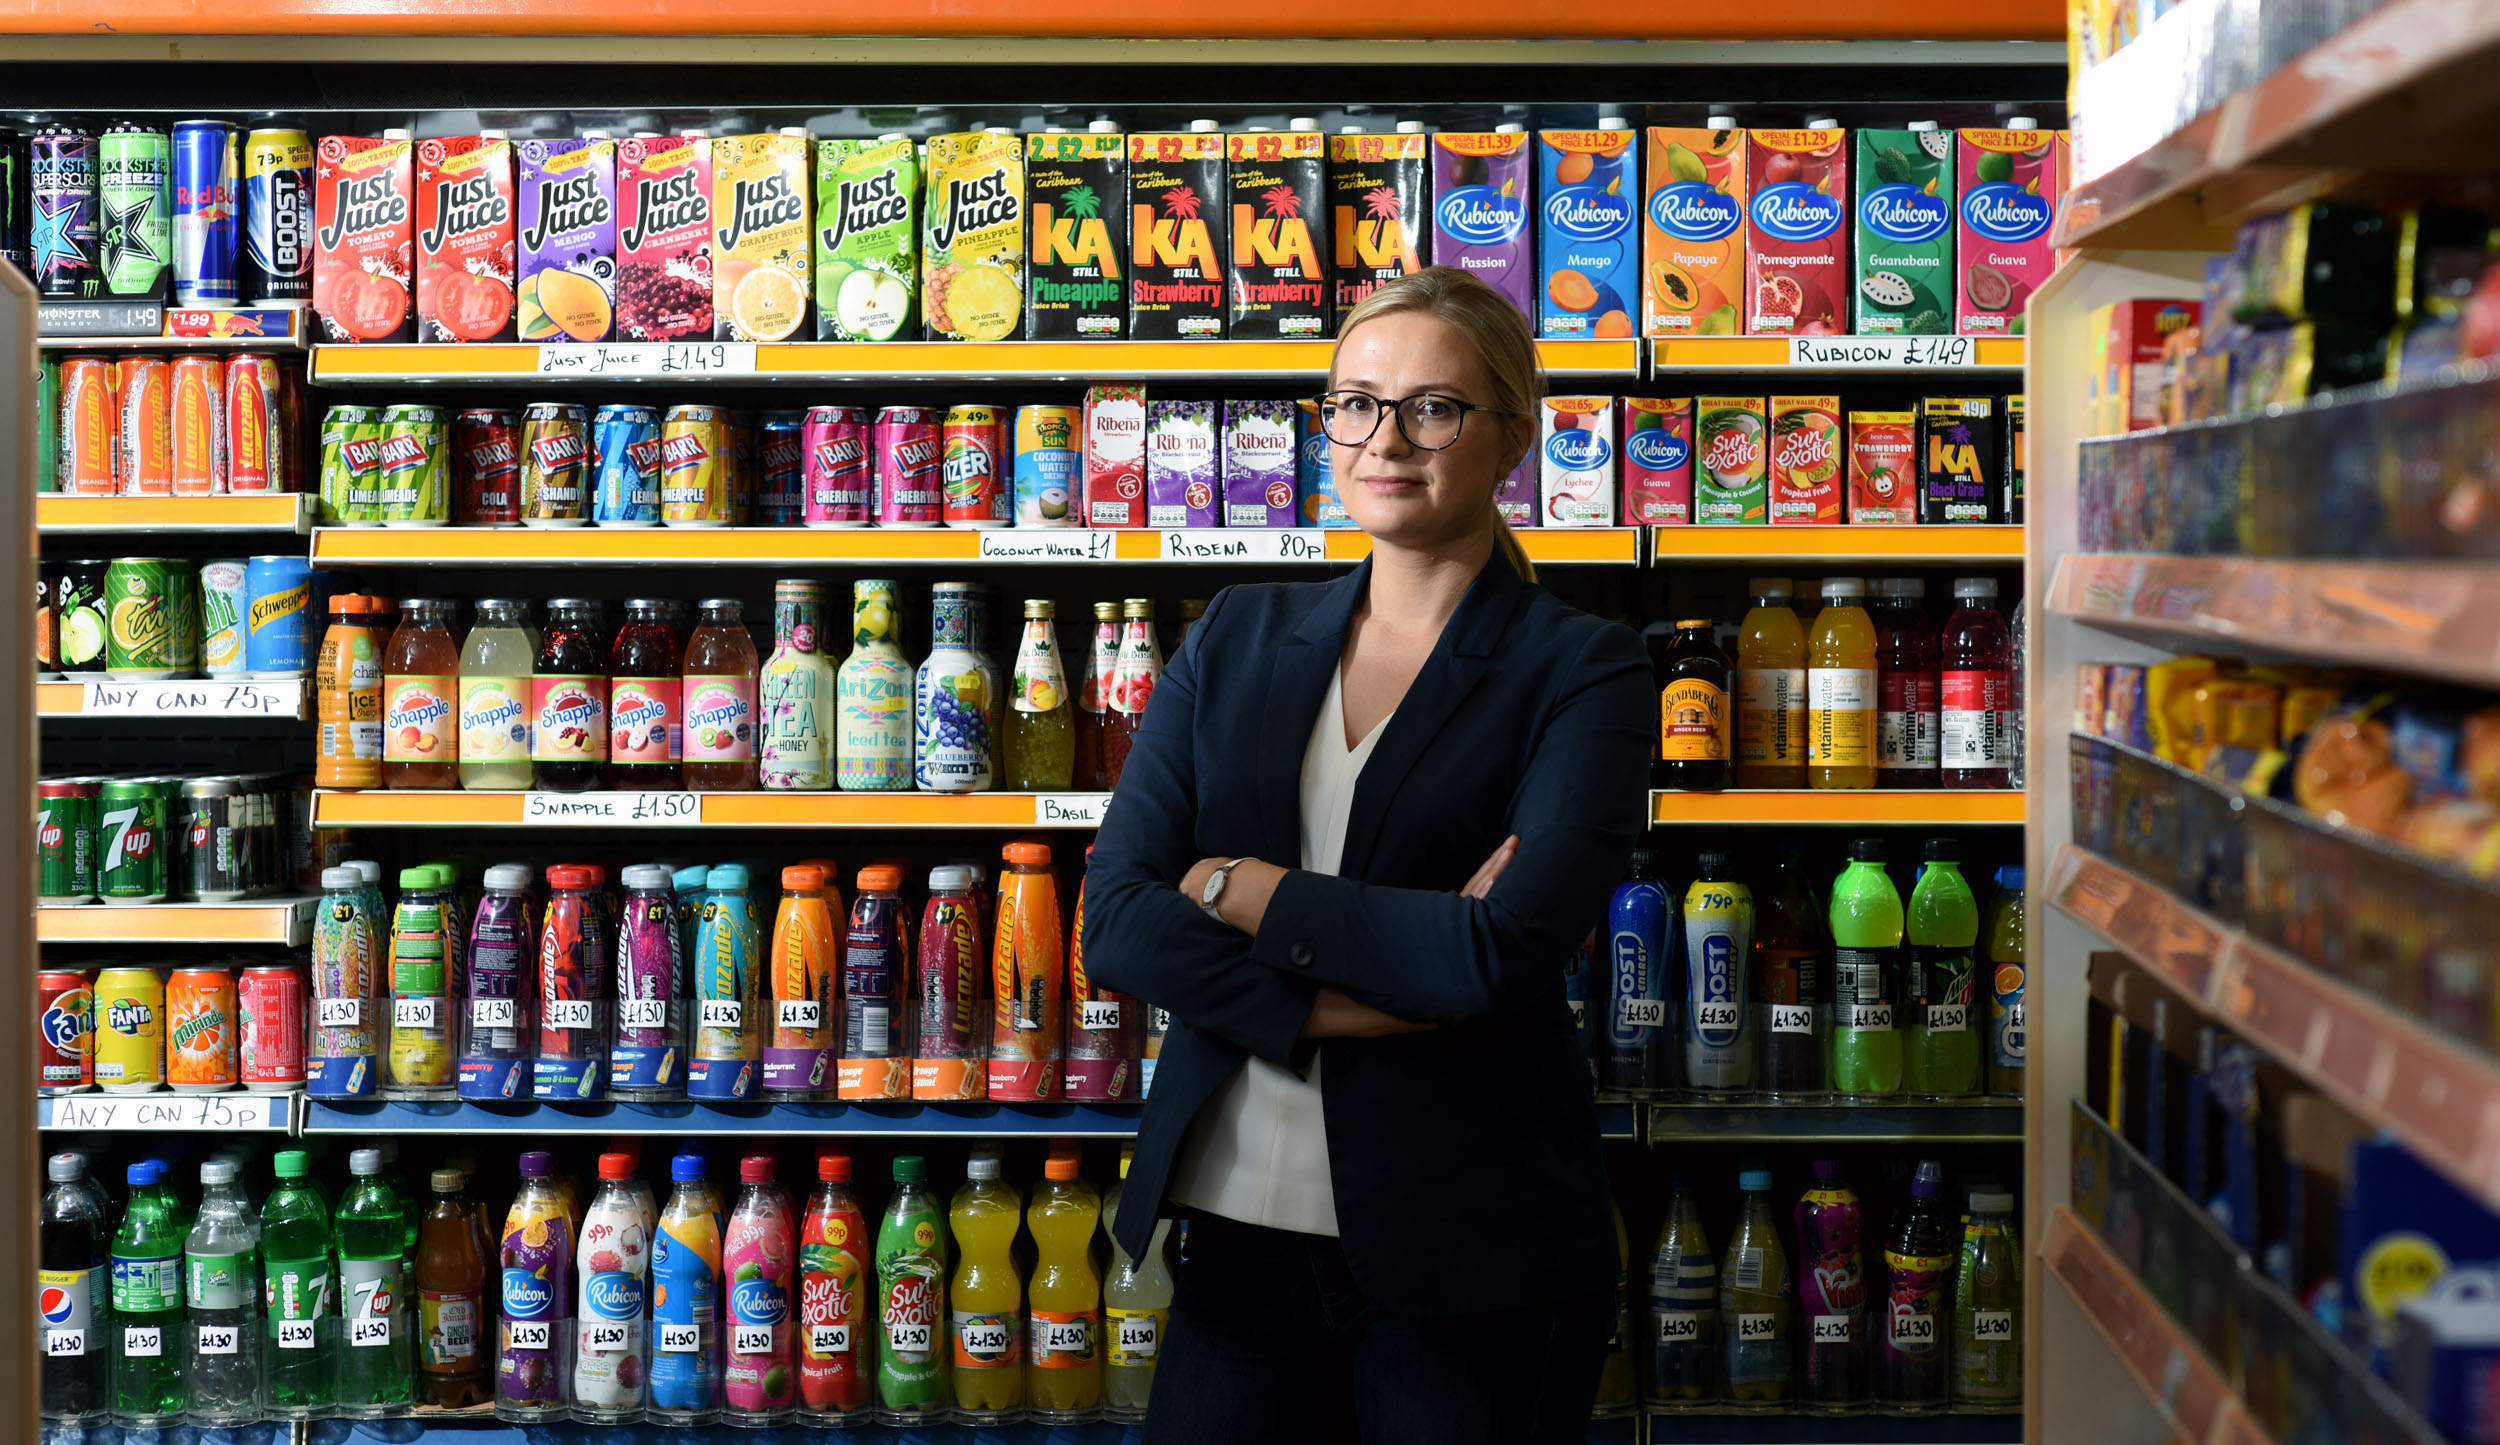 Caption: Laura Cornelsen in front of sugar snack shelves. Credit: Christian Sinibaldi